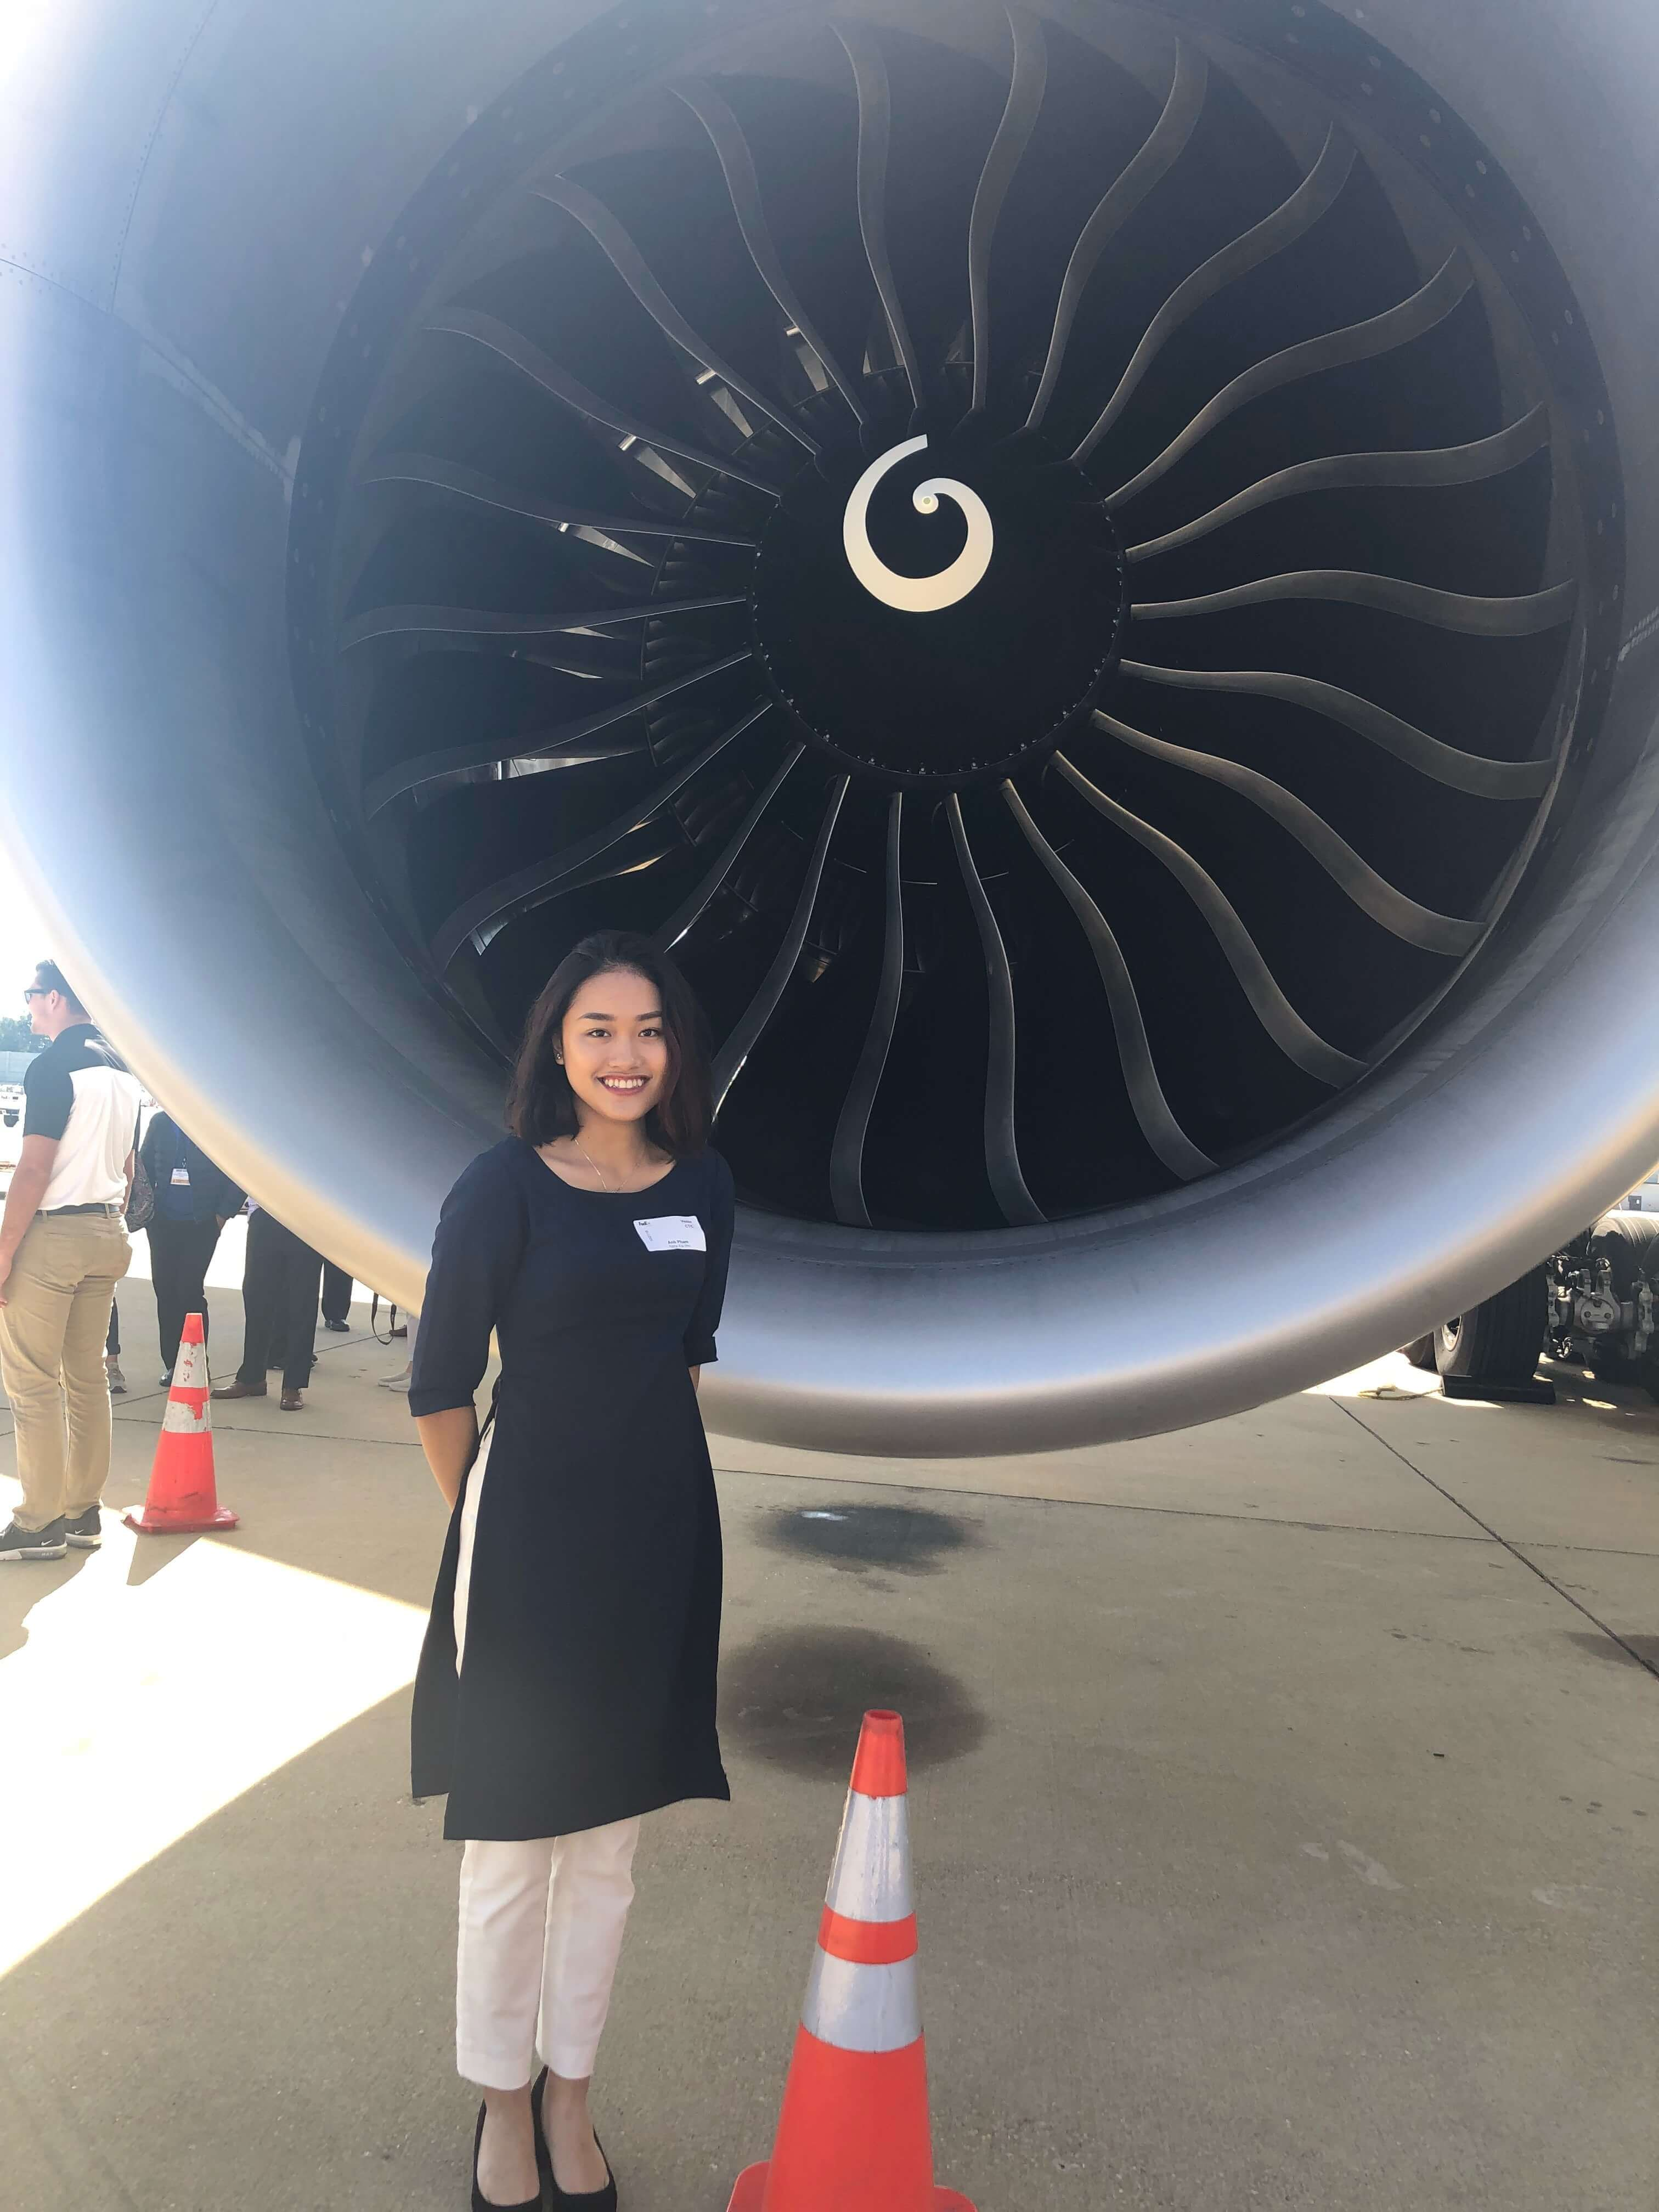 Student in front of jet engine